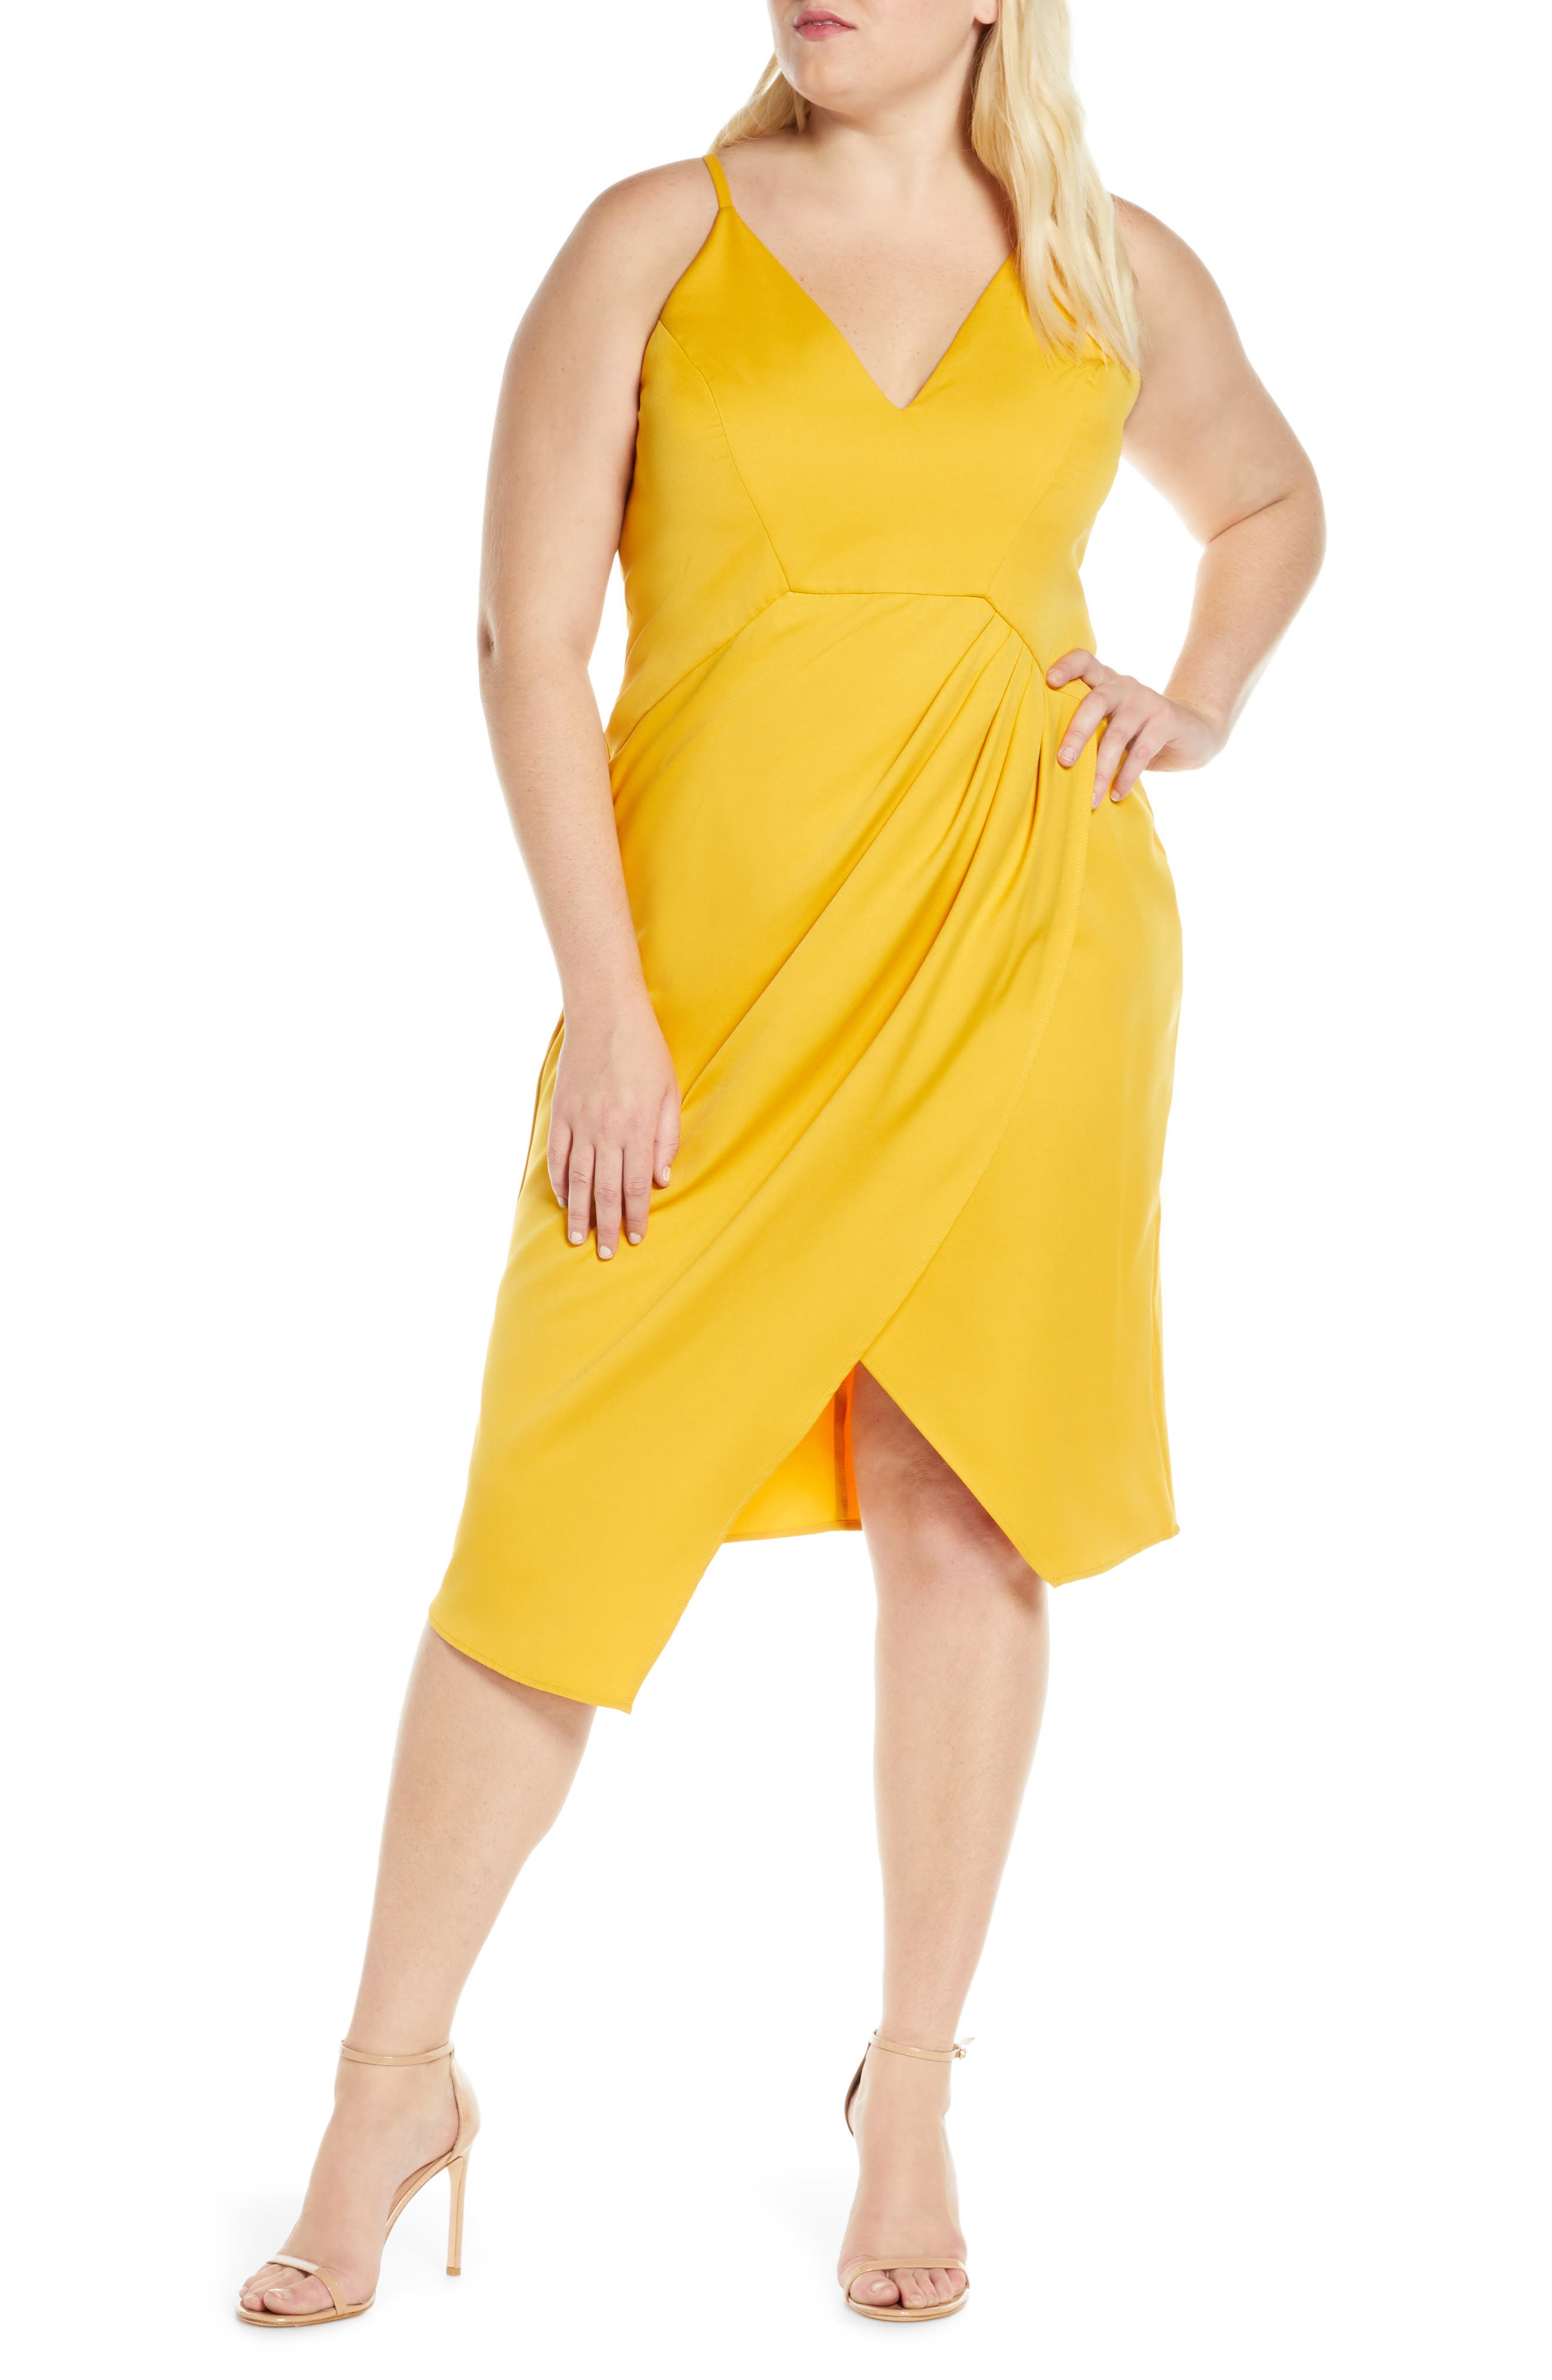 60s 70s Plus Size Dresses, Clothing, Costumes Plus Size Womens Chi Chi London Curve Naima Ruched Asymmetrical Cocktail Dress $105.00 AT vintagedancer.com